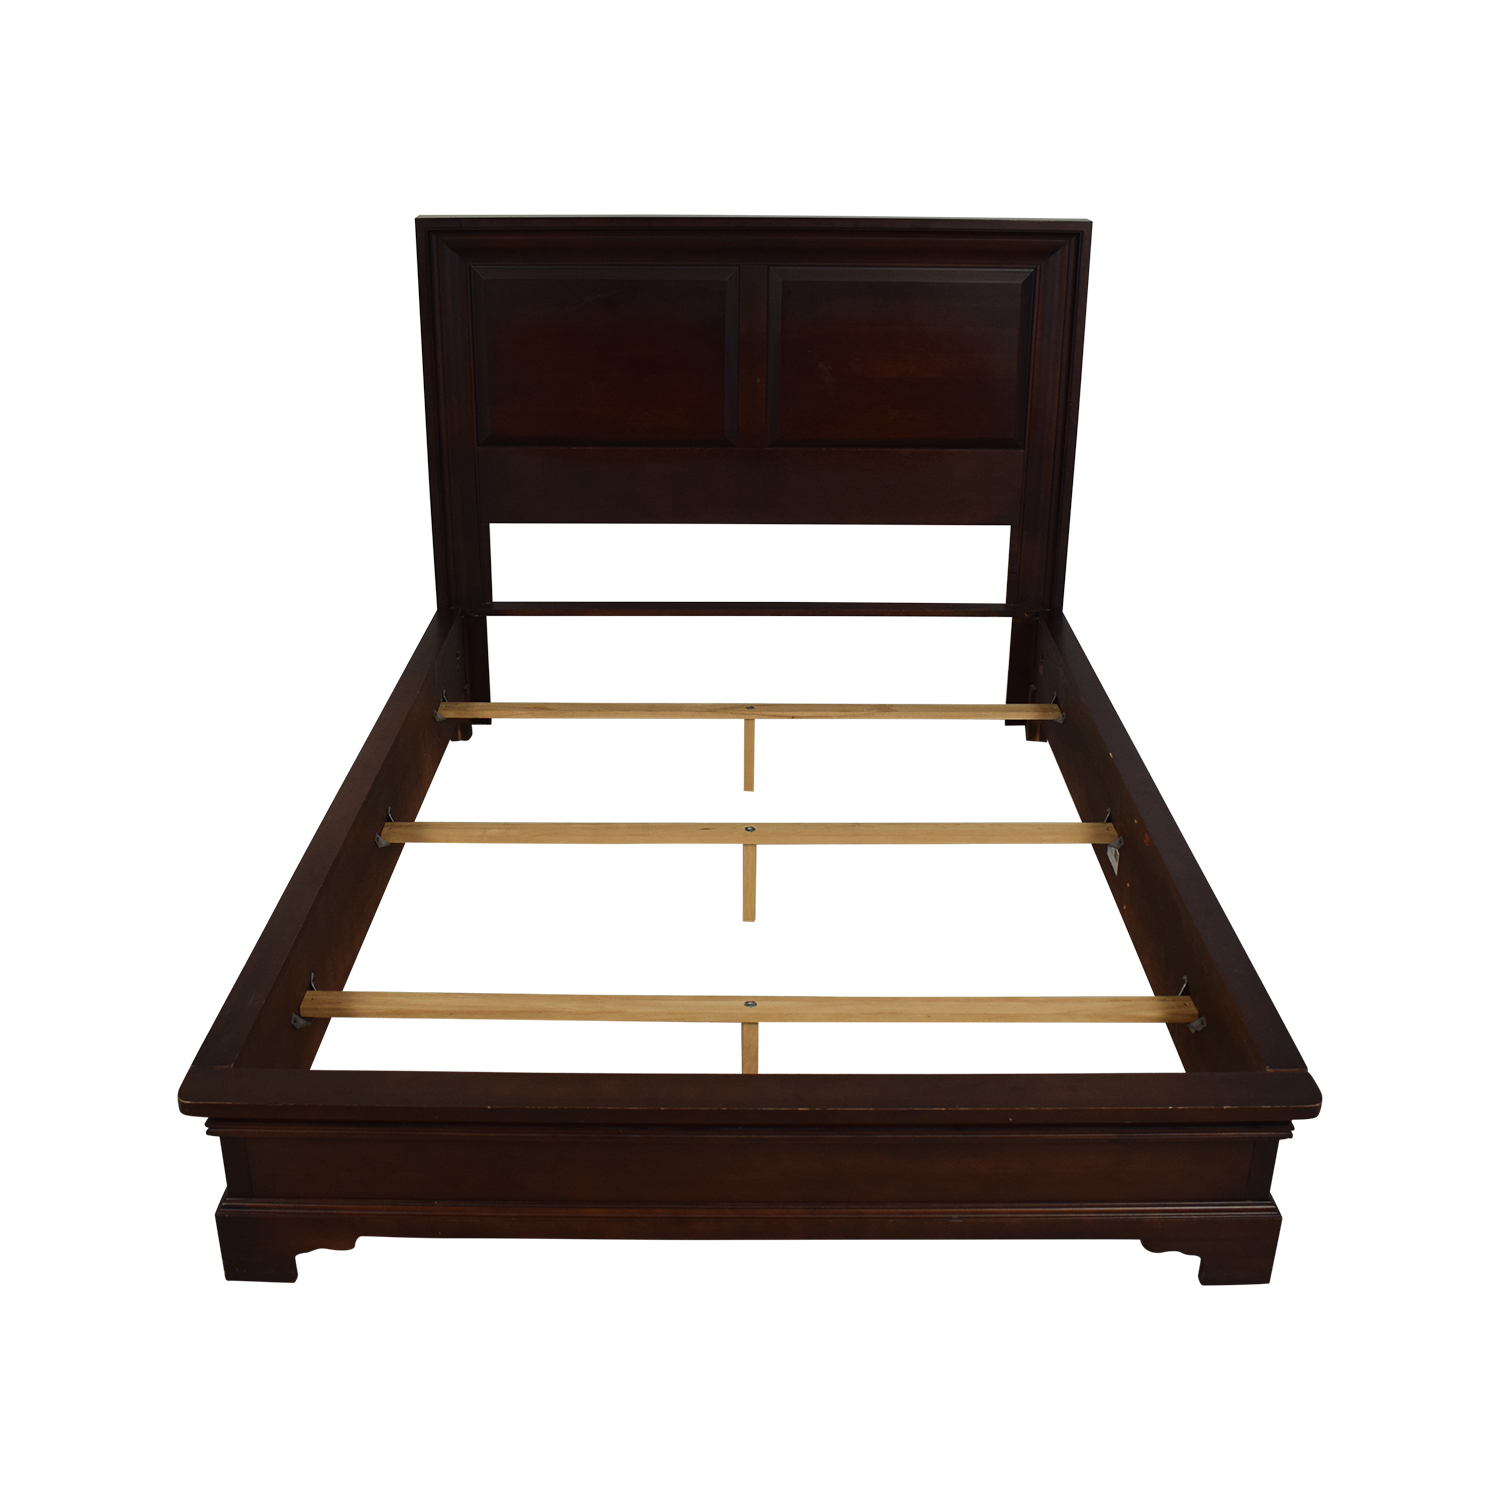 Shermag Shermag Queen Bed Frame brown